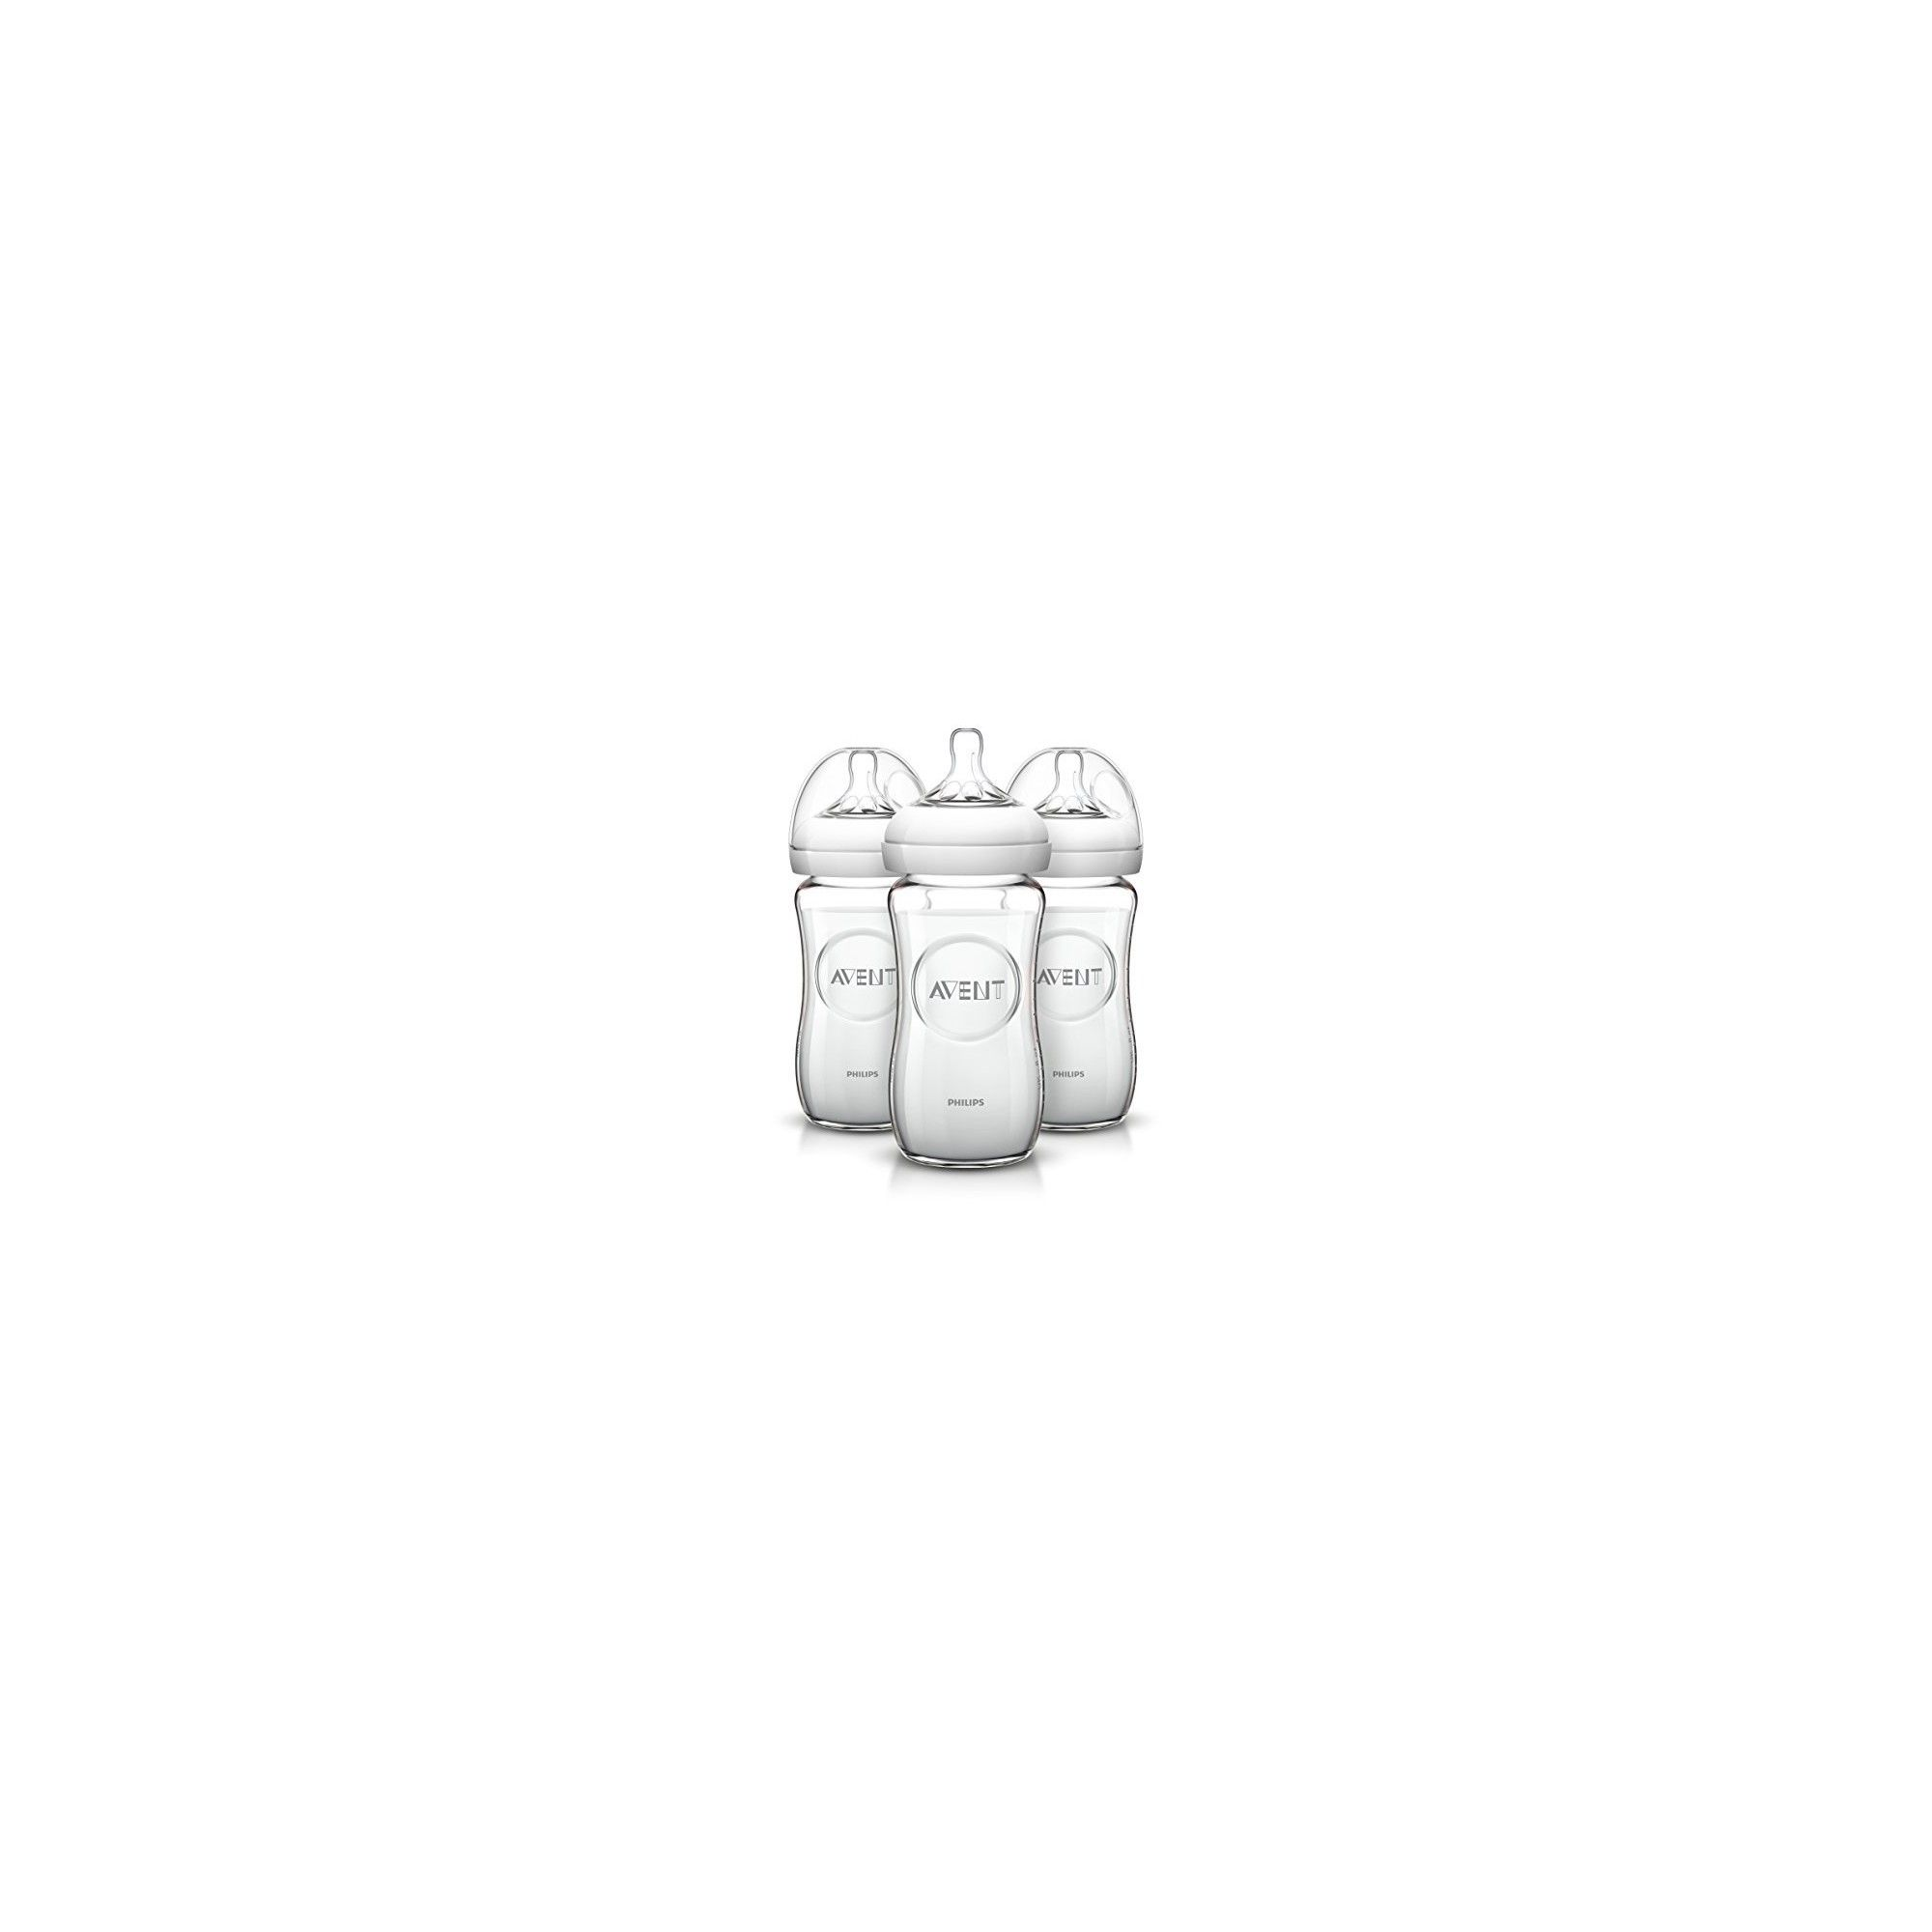 philips avent lot de 3 biberons verre natural 240 ml. Black Bedroom Furniture Sets. Home Design Ideas